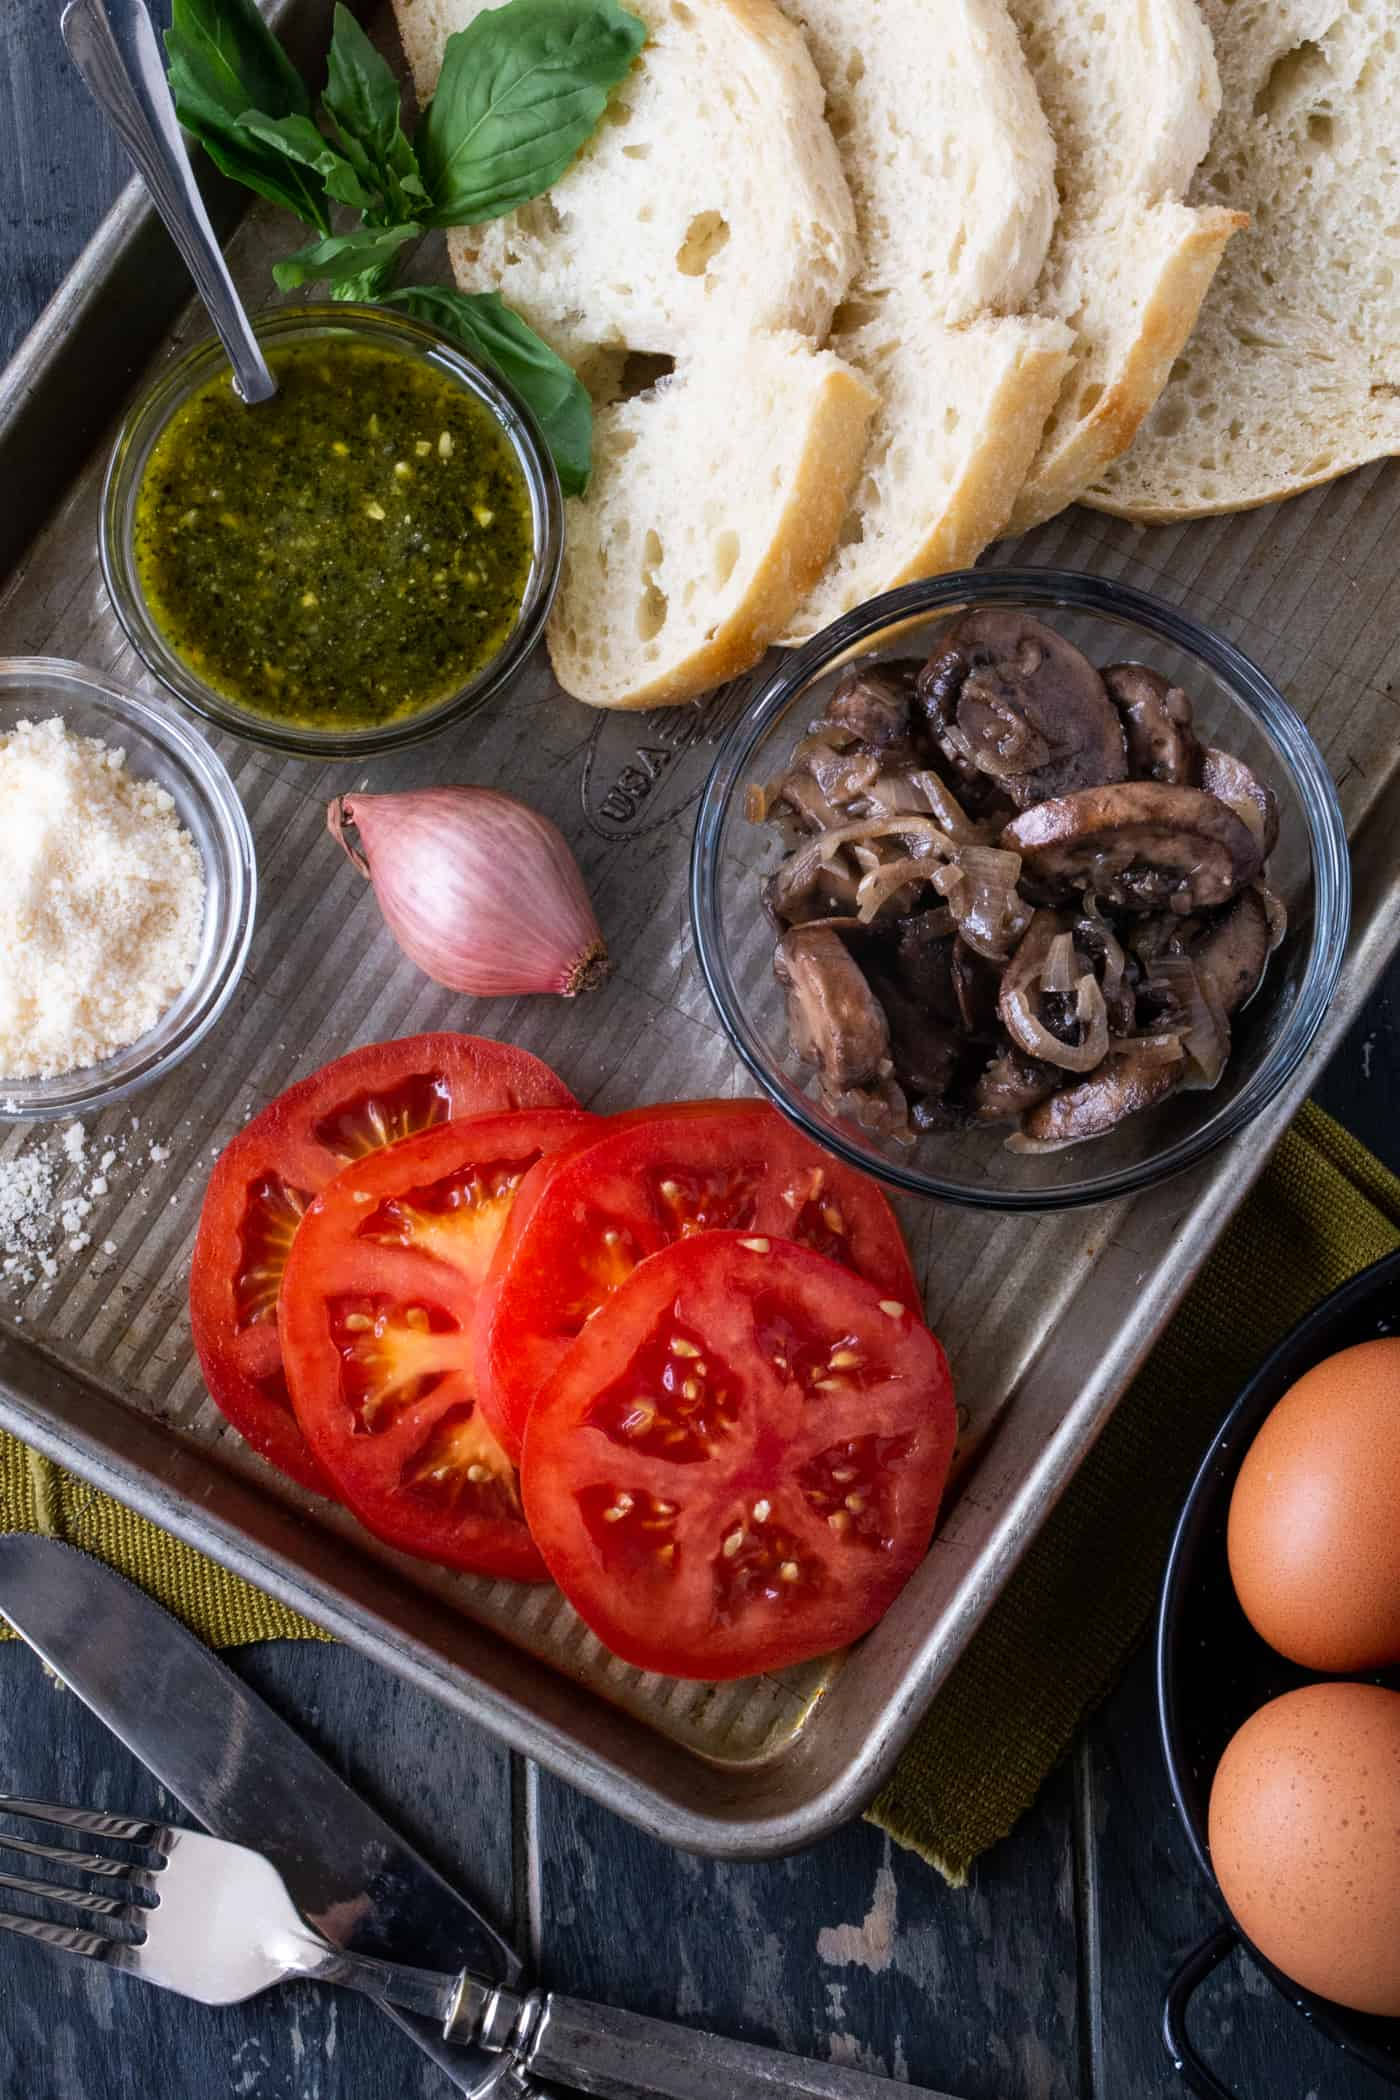 Ingredients for Open-Faced Mushroom and Fried Egg Sandwiches on a sheet pan. Ingredients include bread slices, sauteed mushrooms, shallots, parmesan cheese, pesto and sliced bread.